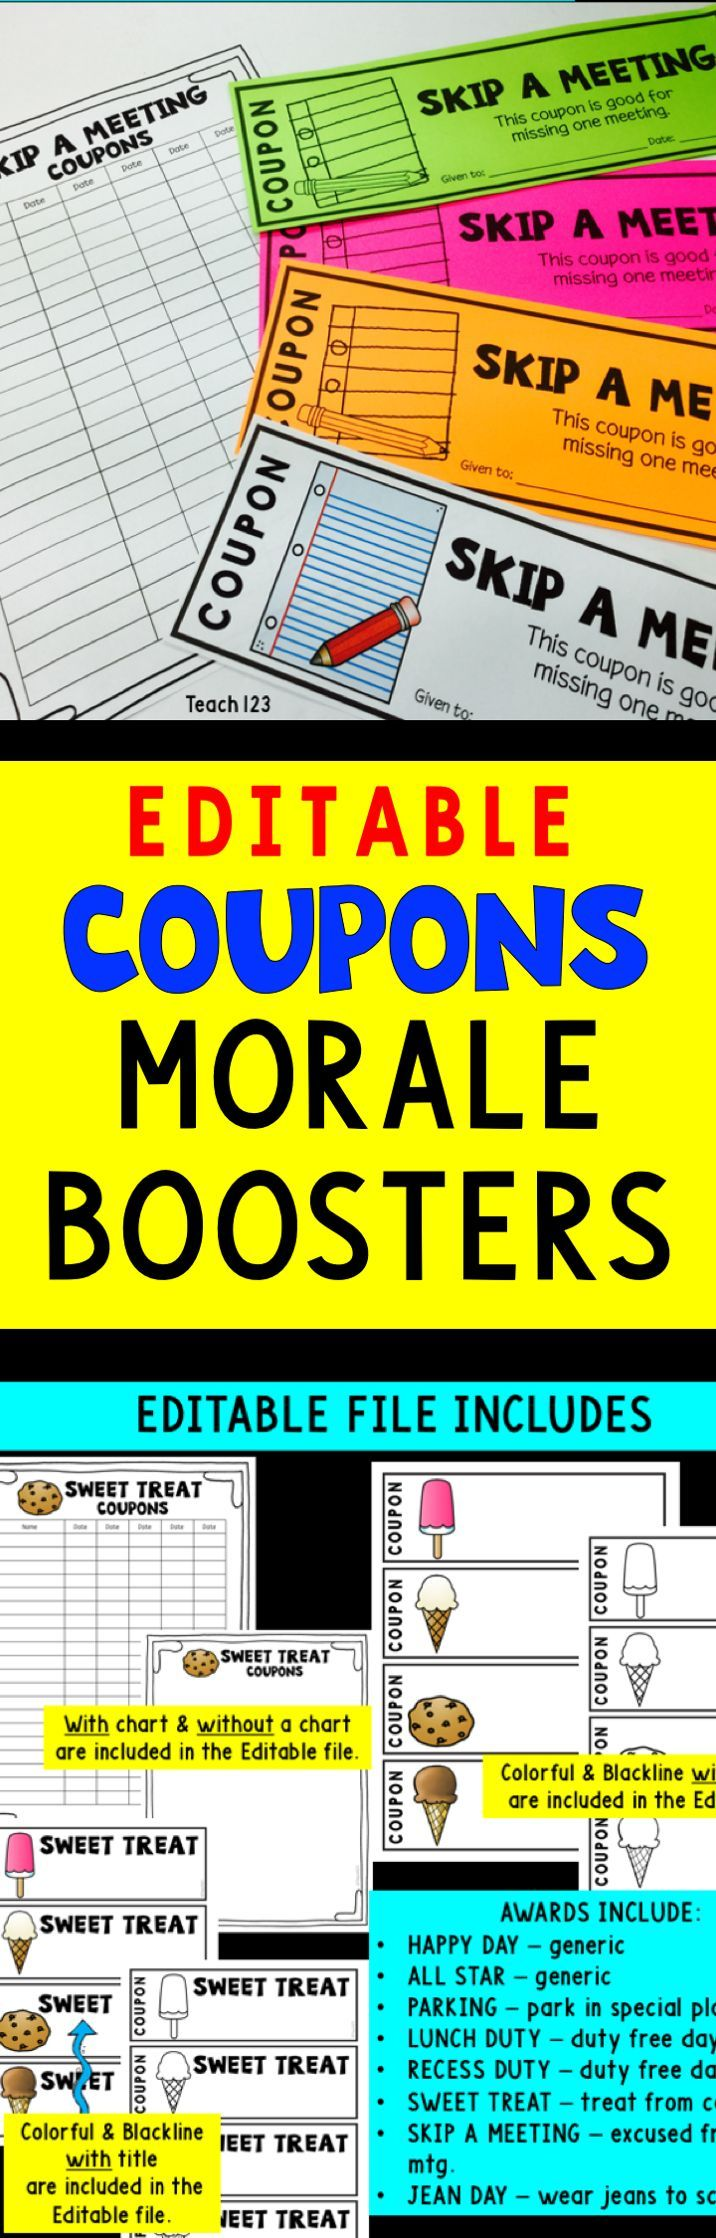 Teacher Appreciation - Staff Morale Booster - Coupons - EDITABLE: Coupons are a fun and inexpensive to improve the climate of your school and make it a happy place to work. Fun coupons like jean day, skip a meeting, special parking spot, are included. paid